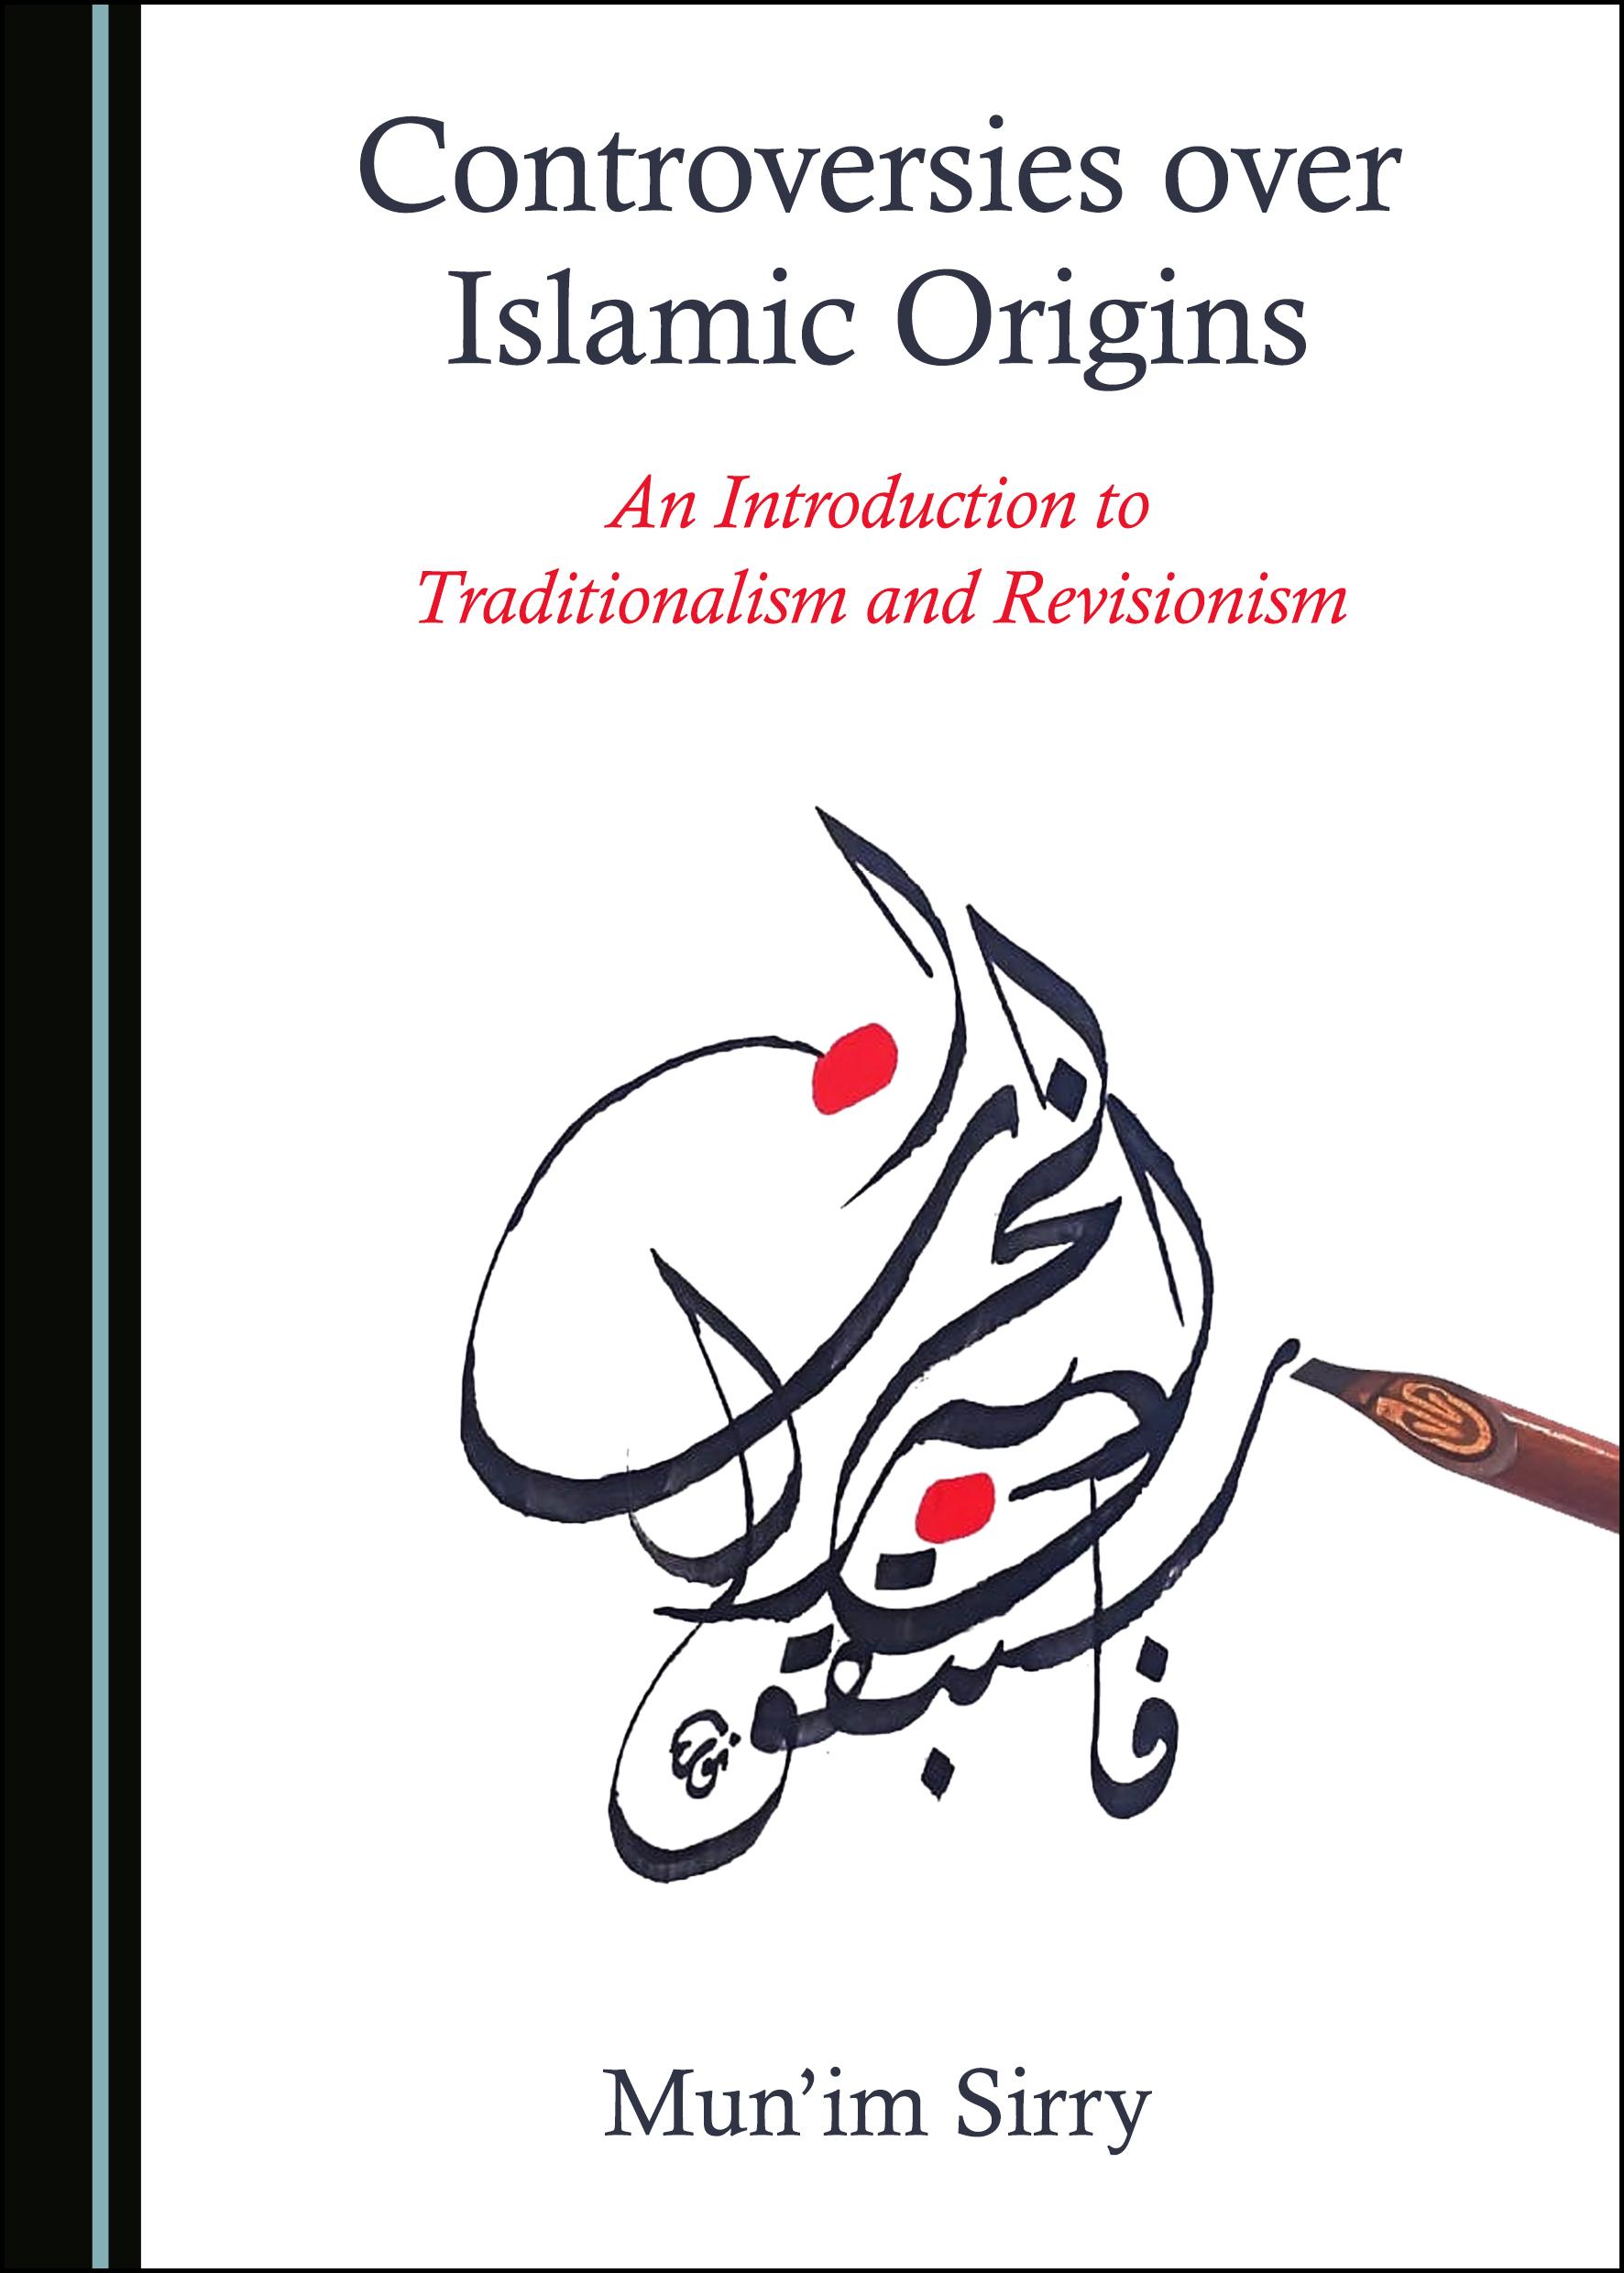 Controversies over Islamic Origins: An Introduction to Traditionalism and Revisionism